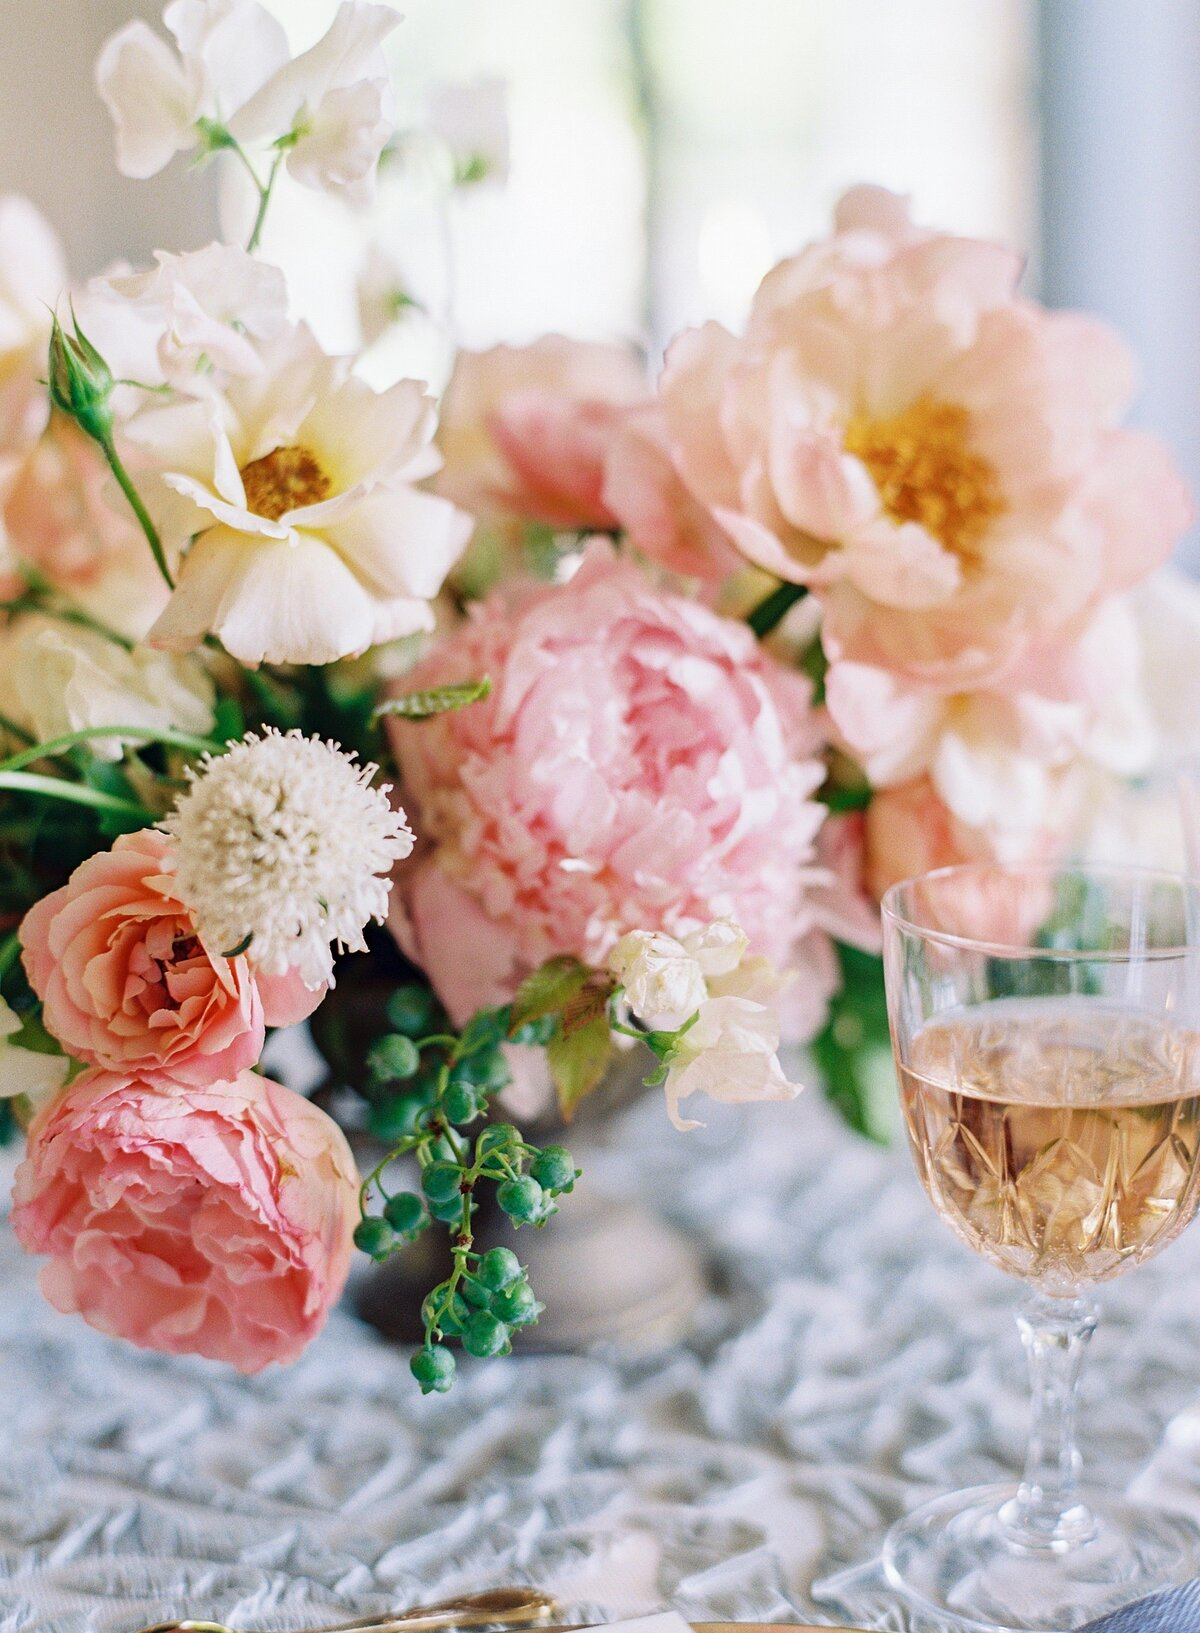 NKT-Events_Wedding-Inspiration-Editorial_Chateau-de-Villette-Bridal_0149